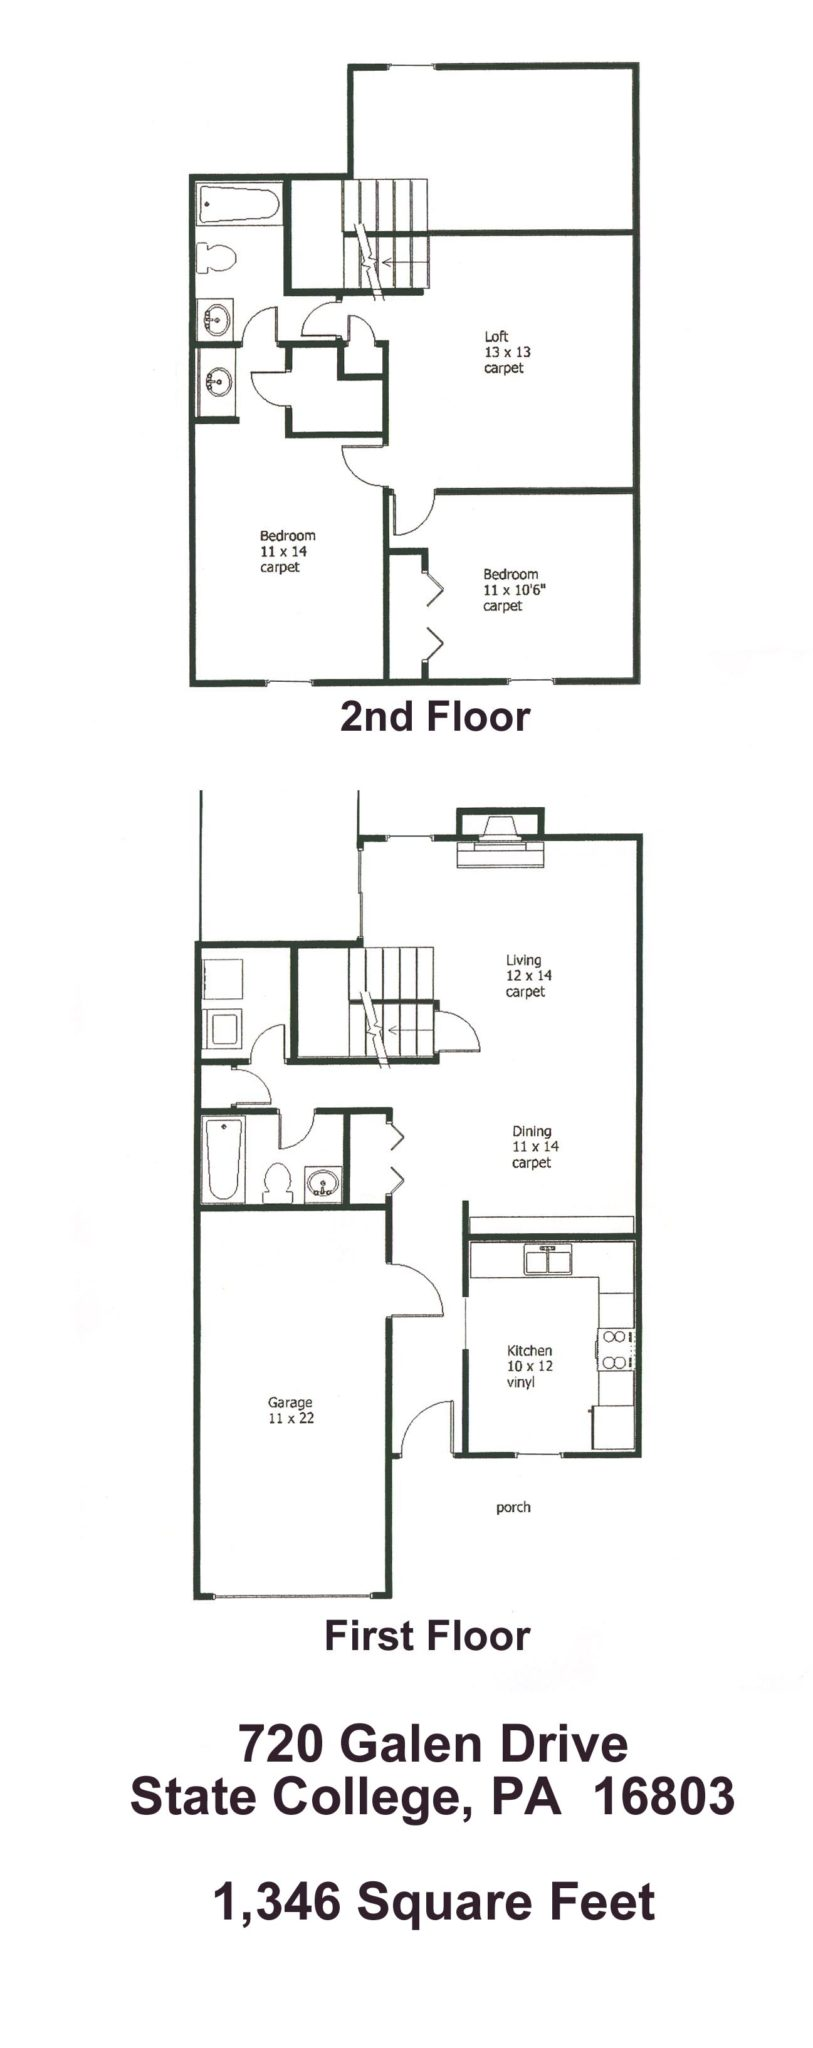 Floor plan of the 2-bedroom townhouse for rent at 720 Galen Drive in State College PA